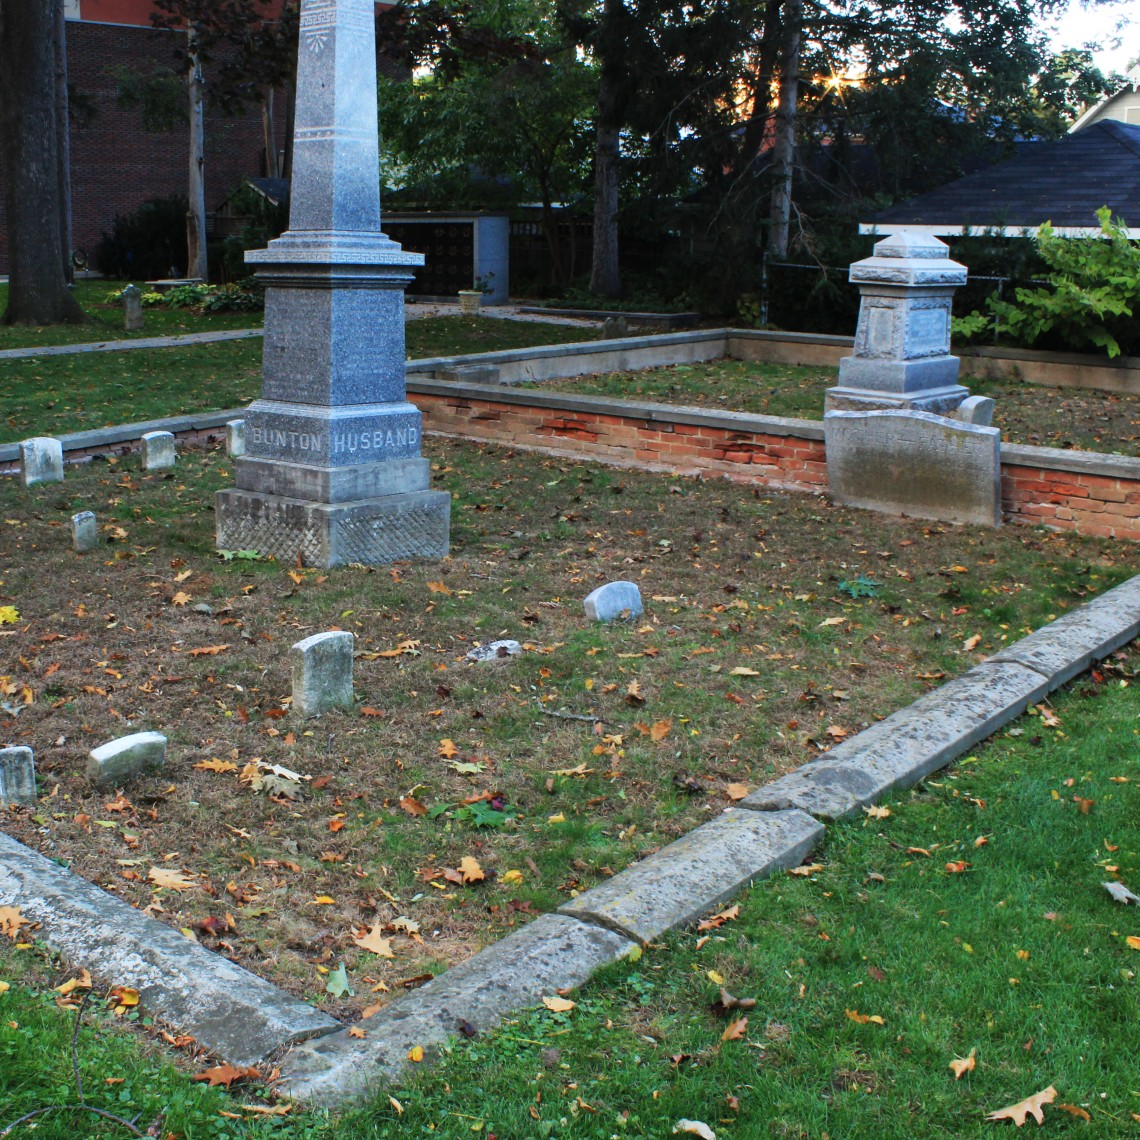 Here is an example of a family plot in St. Luke's Anglican Church cemetery, located in Burlington, Ontario. MacNab's cemetery may have been similar in appearance.